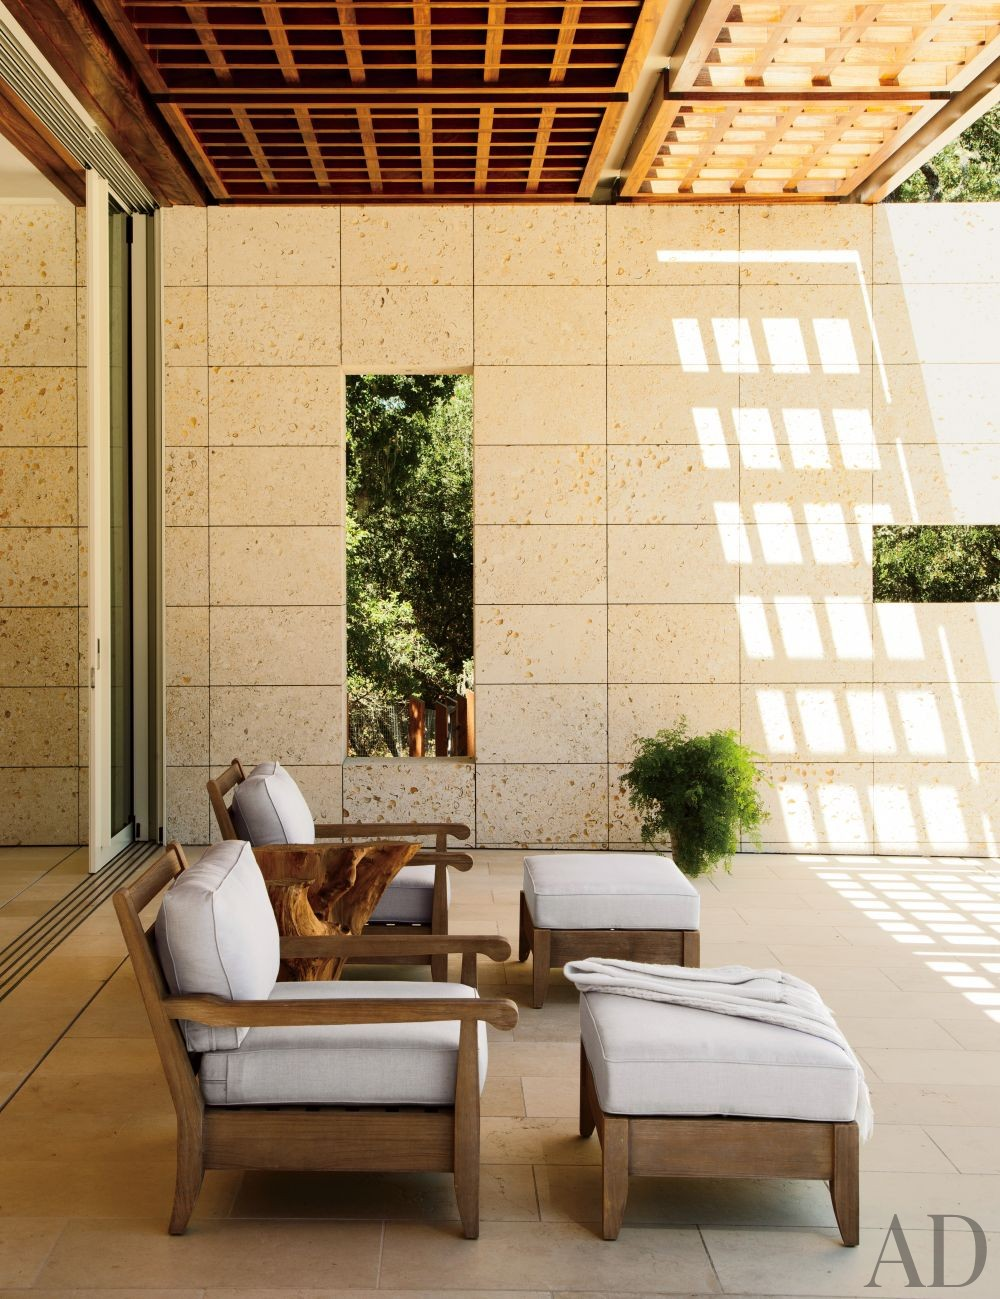 Modern Outdoor Space by April Powers and Backen, Gillam & Kroeger Architects in Woodside, California